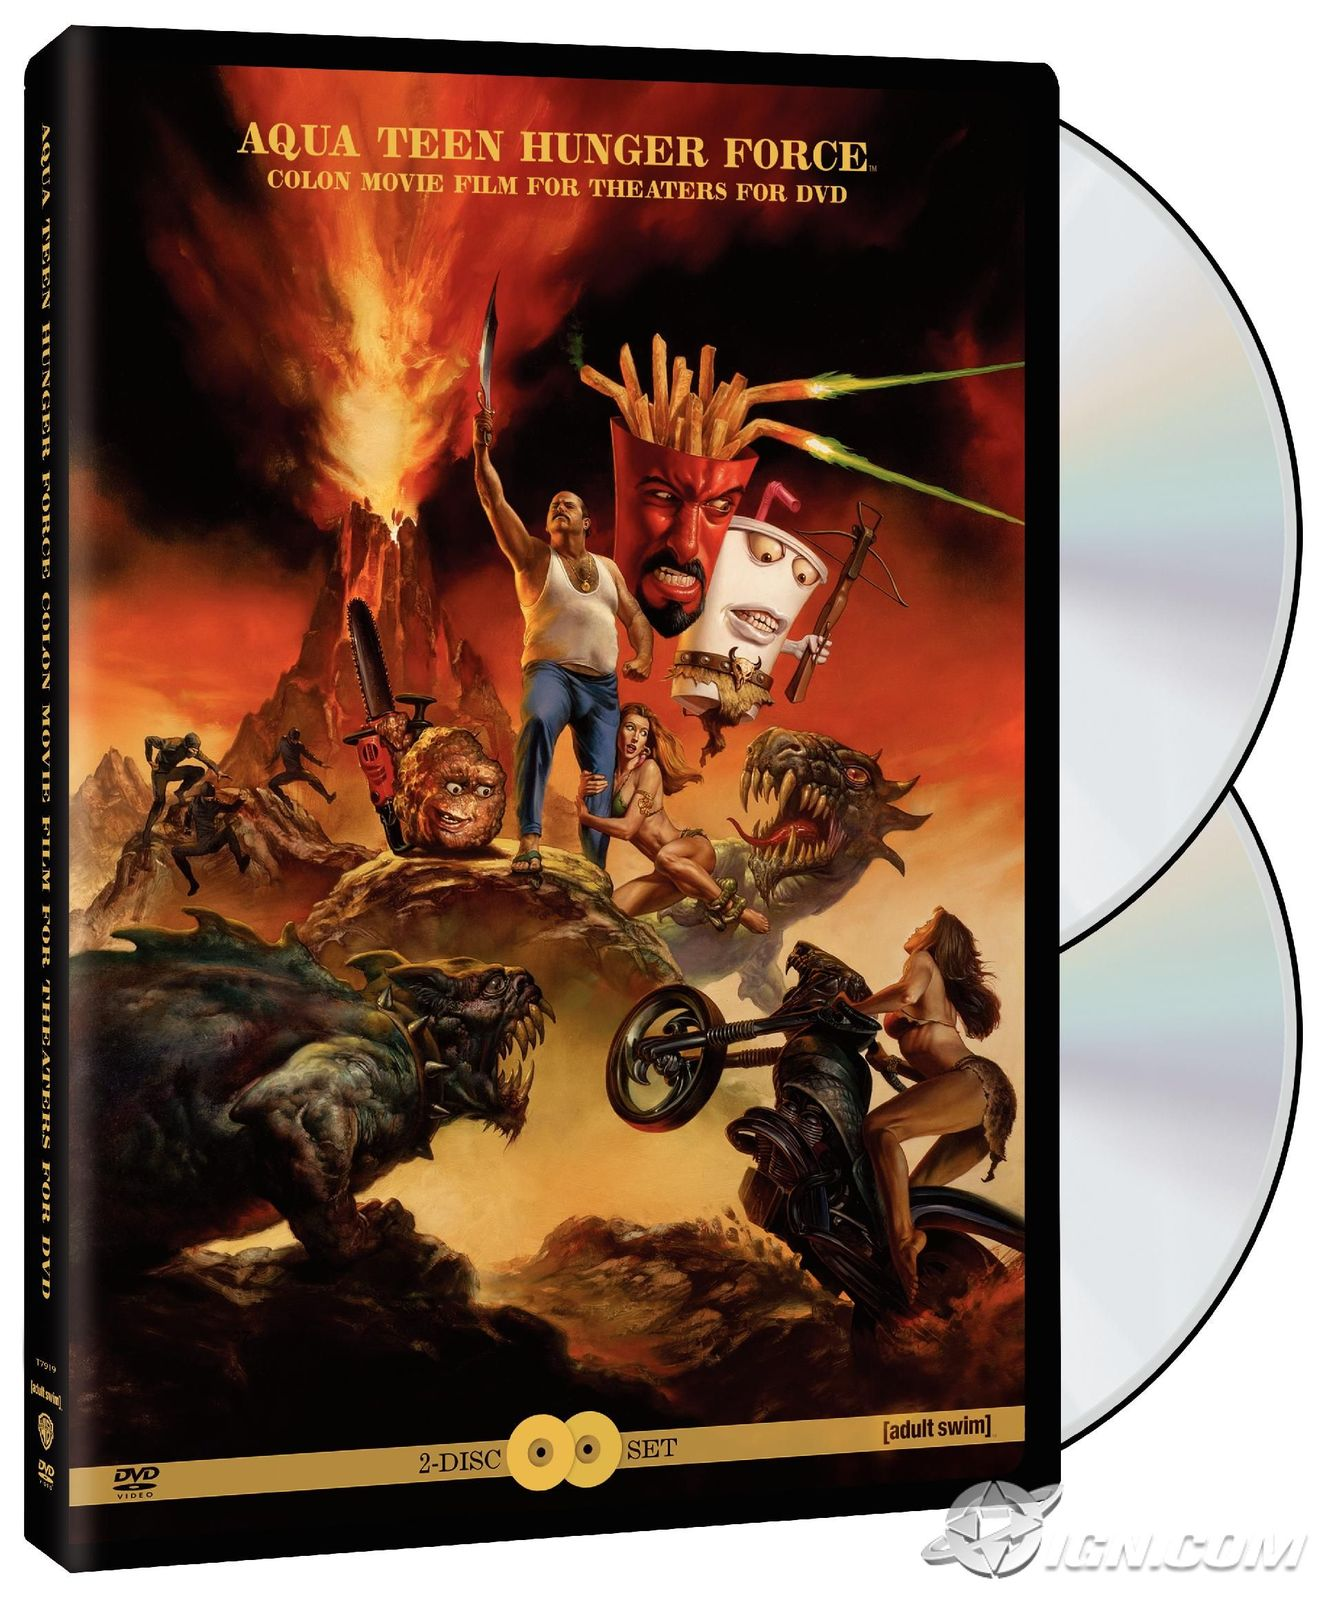 Aqua Teen Hunger Force Colon Movie Film for Theatres [DVD] Free Shipping Canada